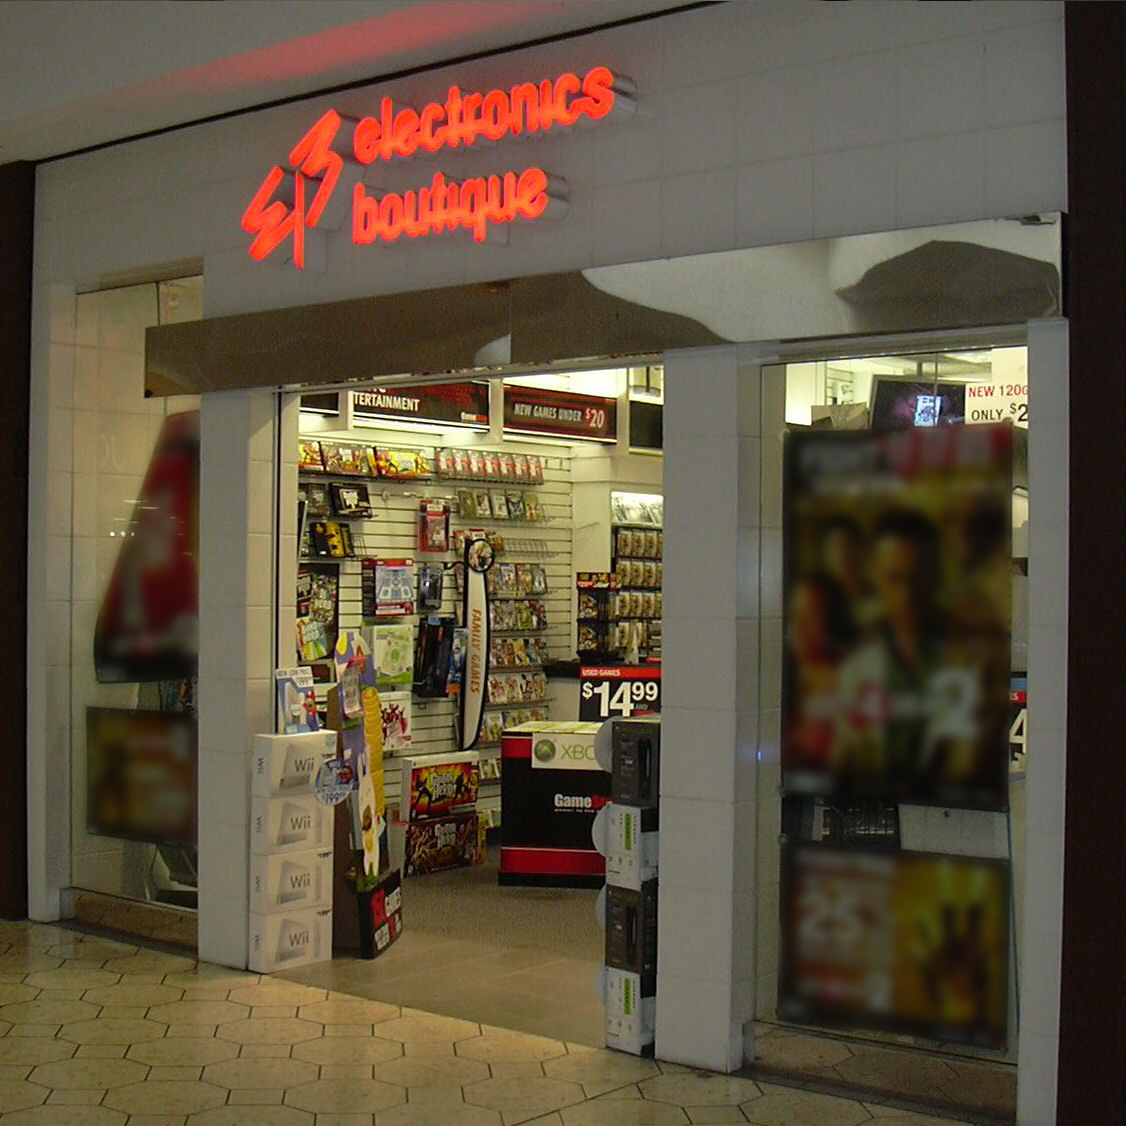 File:Electronics Boutique - Store 4565 (10-13-09).jpg - Wikimedia Commons